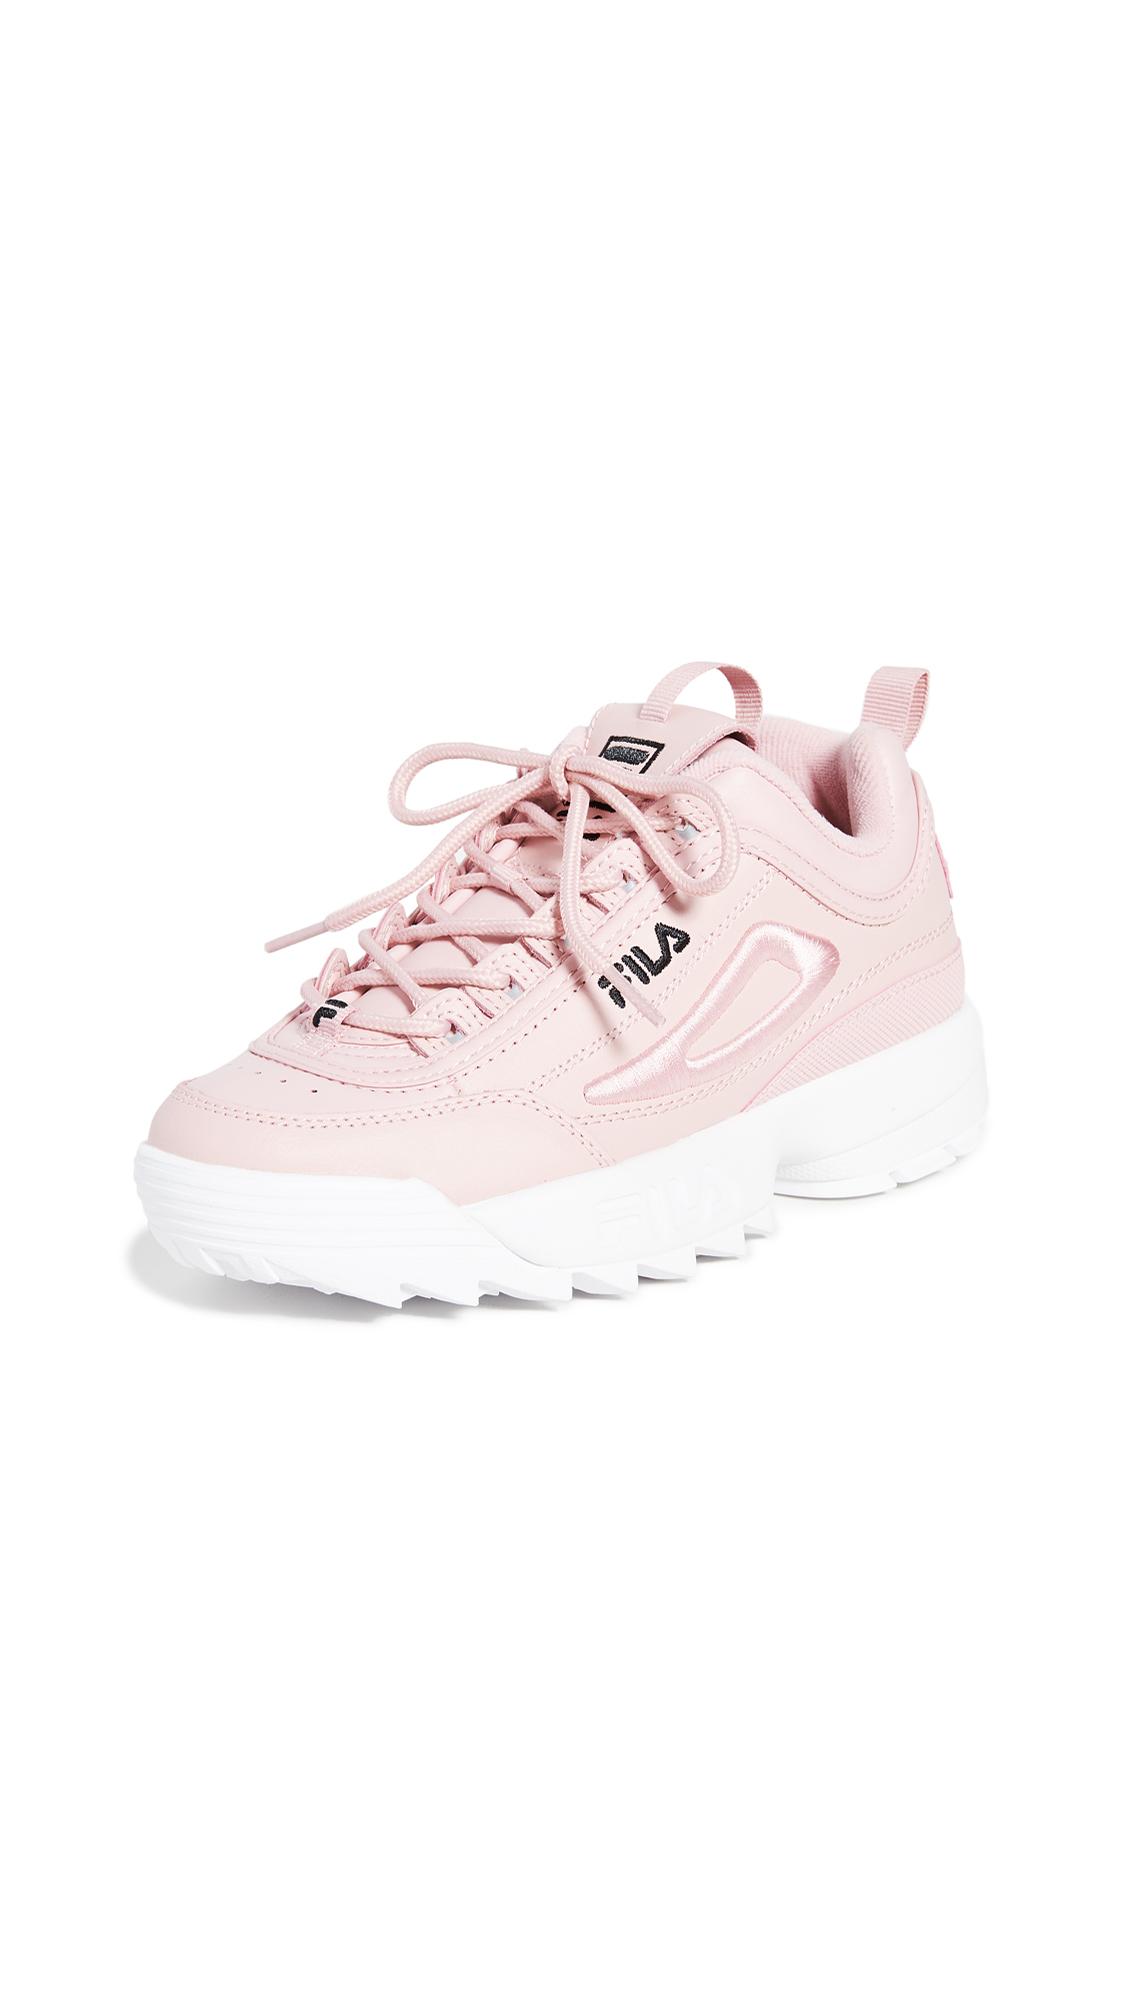 Fila Disruptor II 3D Embroider Sneakers – 30% Off Sale